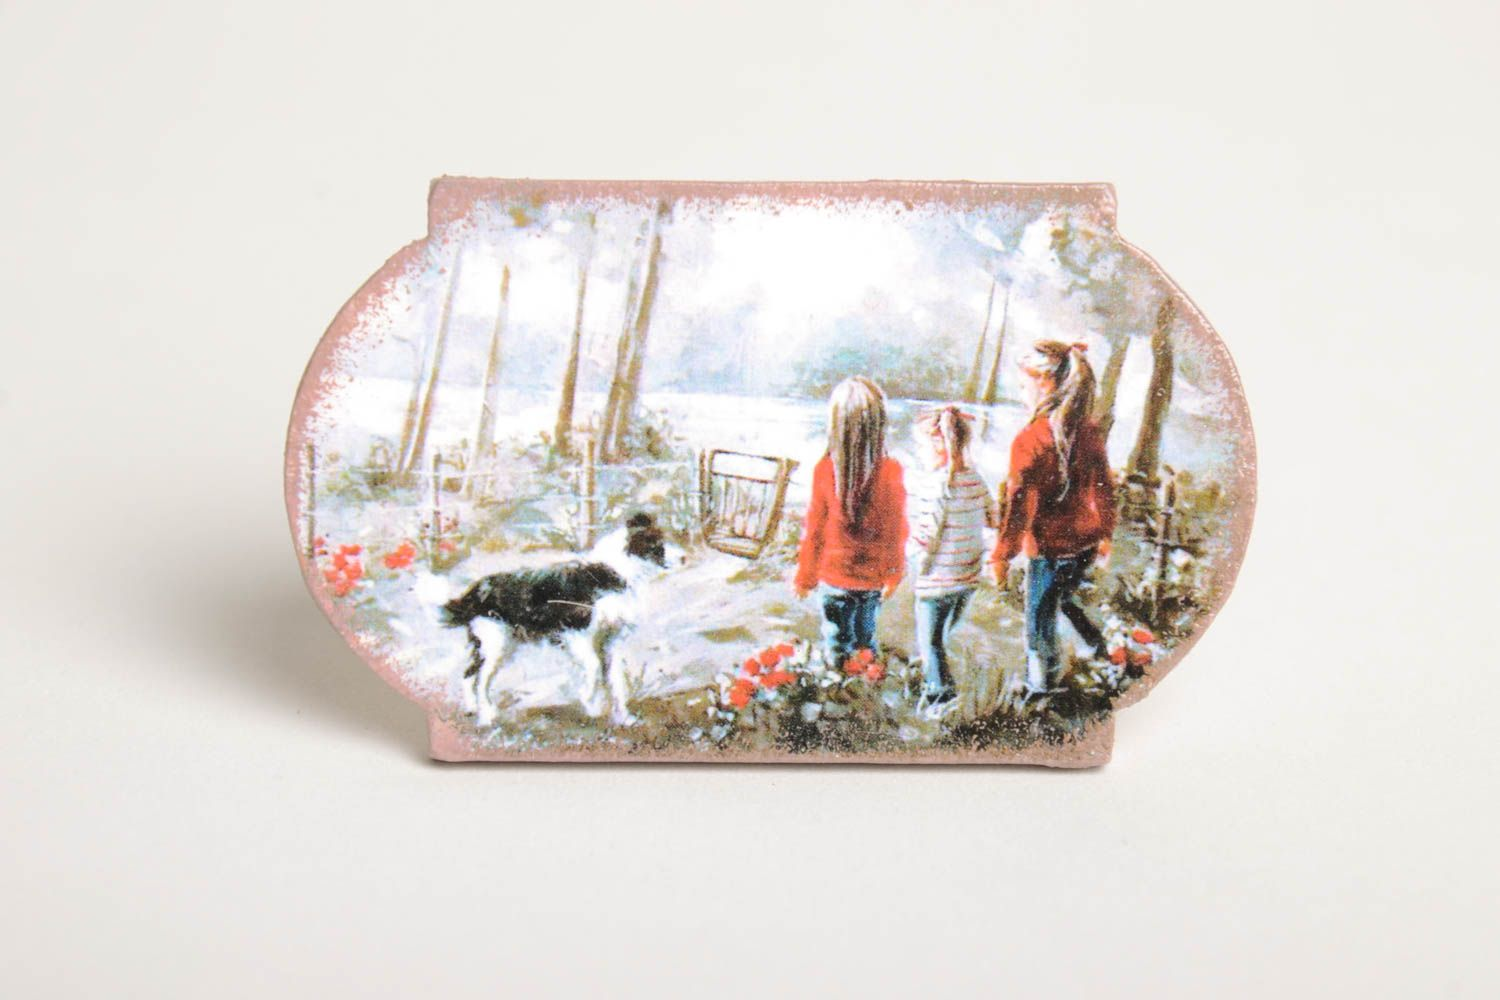 Unusual handmade magnet kitchen supplies decoupage ideas decorative use only photo 2